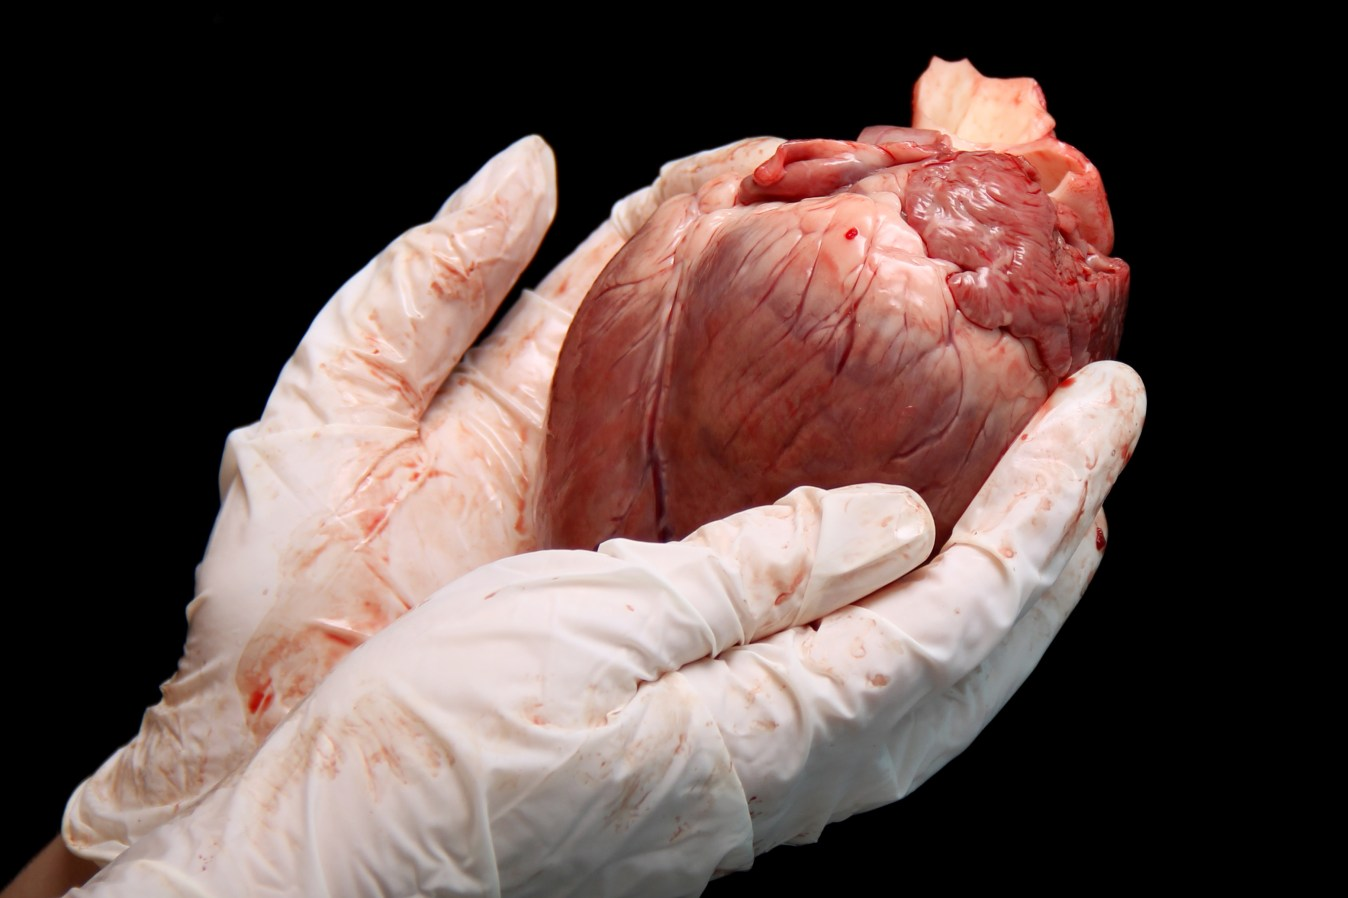 heart donors concept. abstract organ transplantation. A human heart in woman's hand. Saving lives hopelessly sick. Complex surgical operations. International crime. Assassins in white coats. isolated on black background. Image credit: Aleksandra Kuznecova / 123rf. heart damage concept.